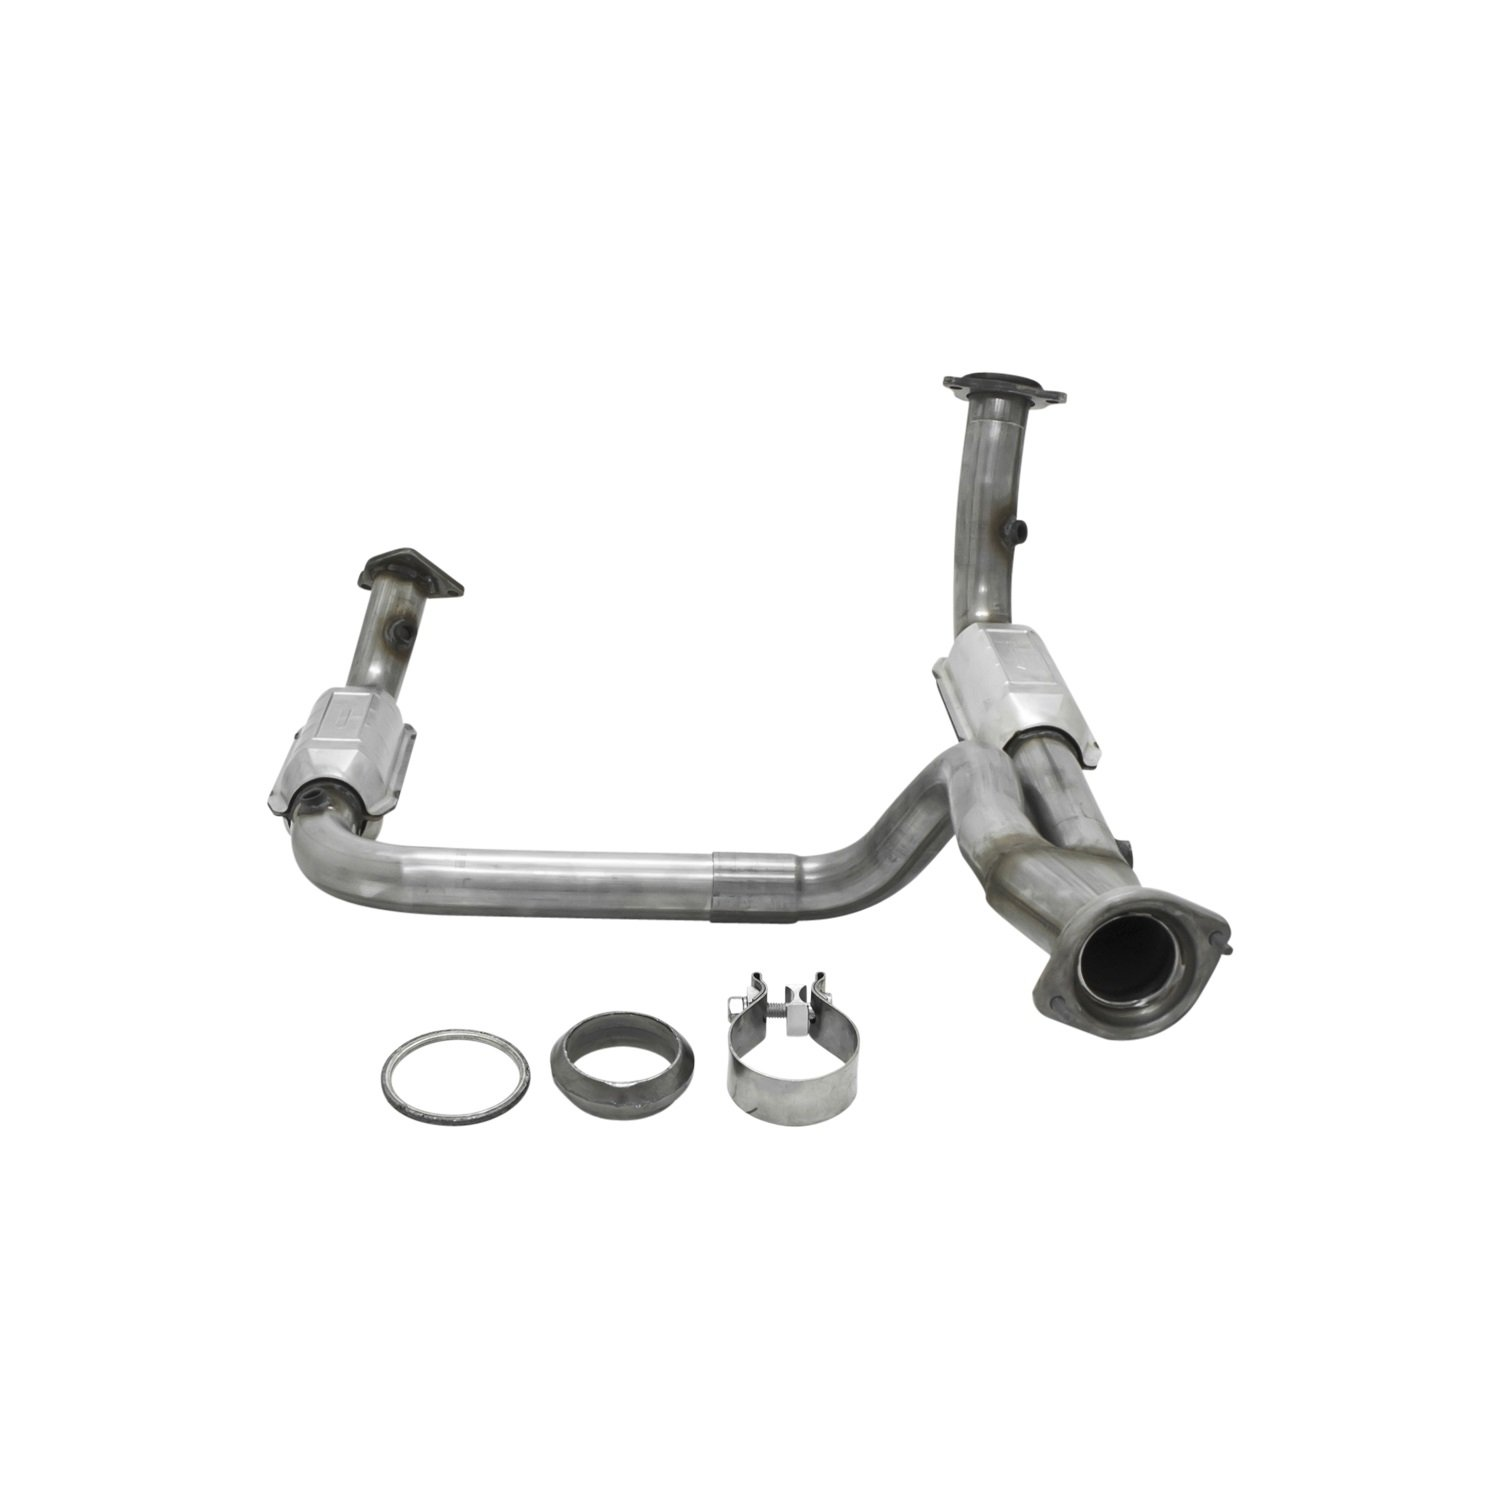 Flowmaster 2010019 25 Inlet 3 Outlet Direct Fit Chevy 350 Knock Sensor Location Catalytic Converter Non Carb Compliant Automotive